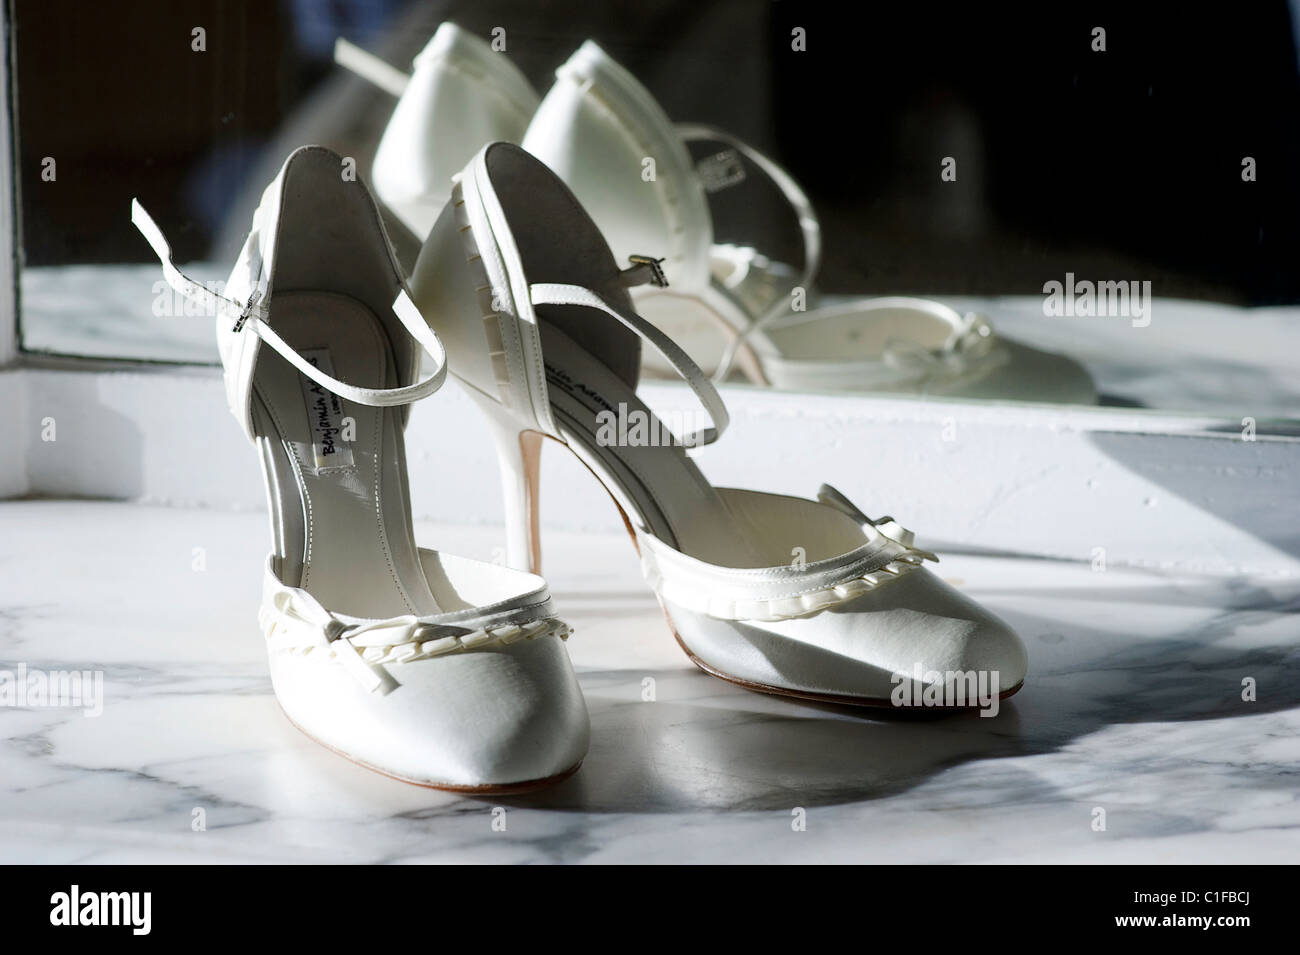 pair of white cream colored stiletto wedding bridal shoes on a marble shelf against a mirror Stock Photo